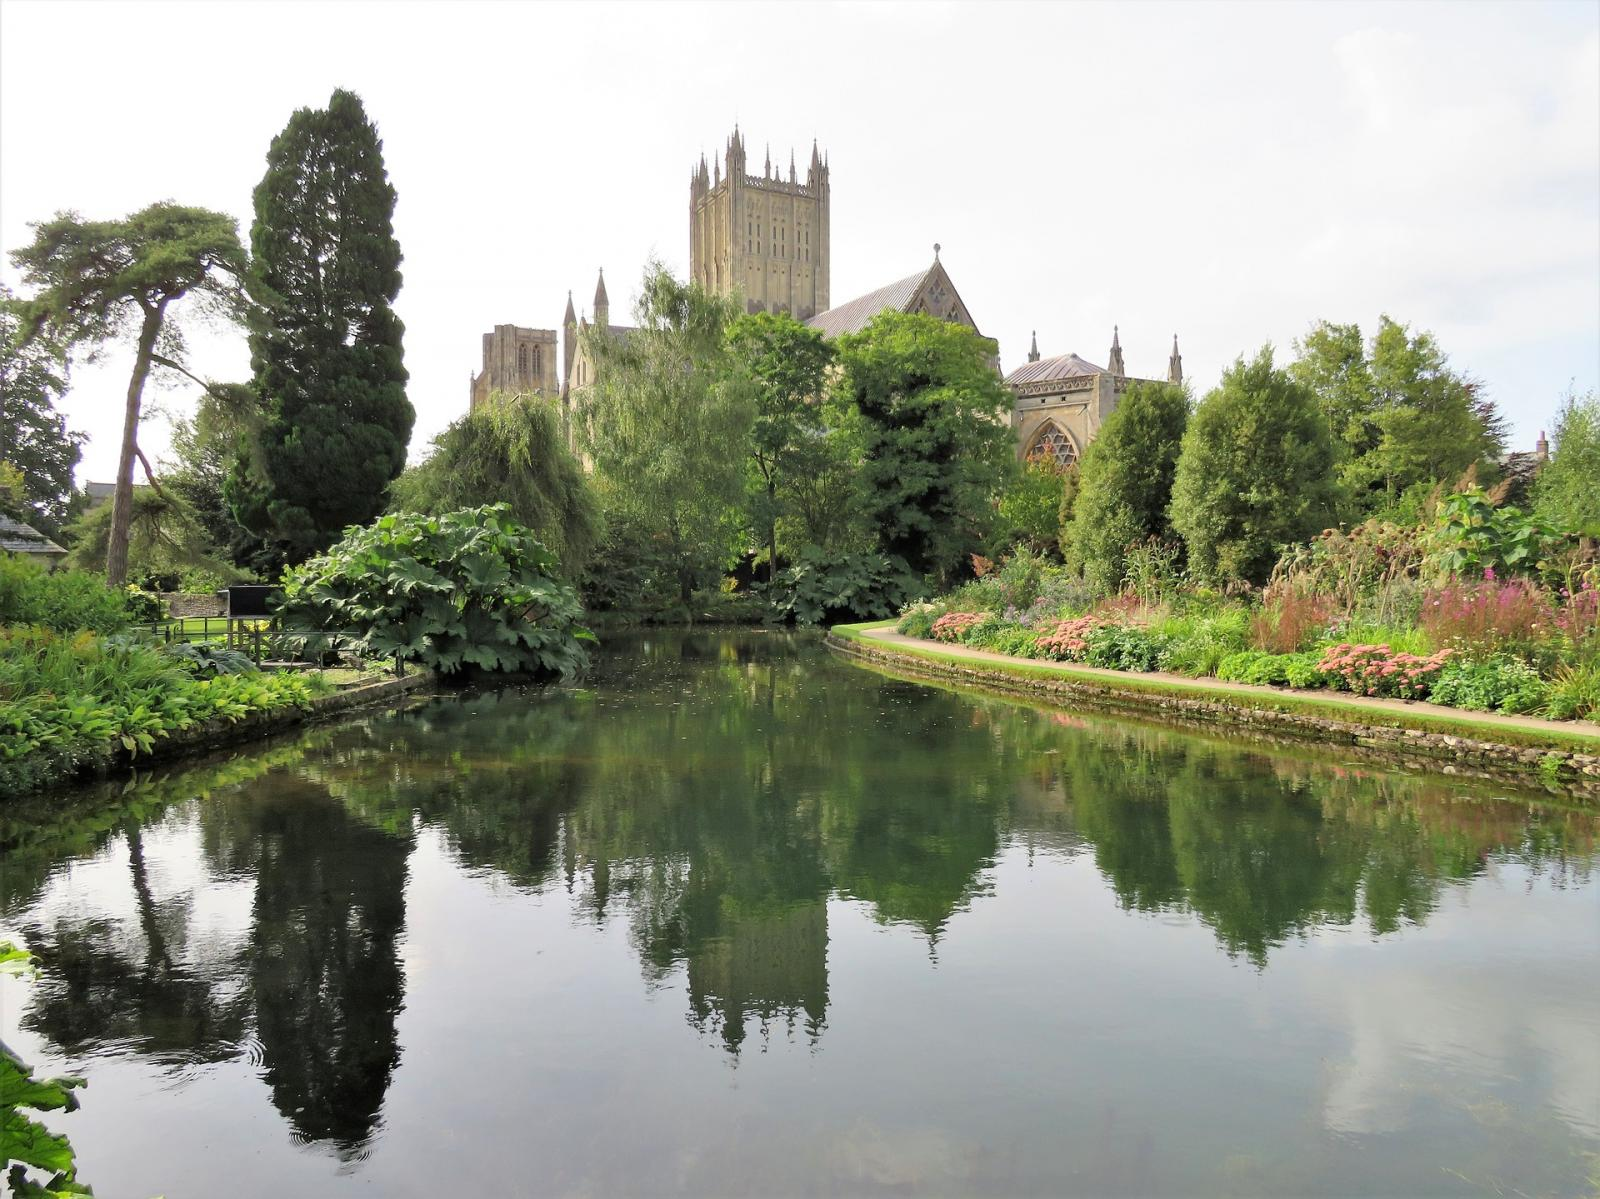 Wells Cathedral. Photo credit: pixabay